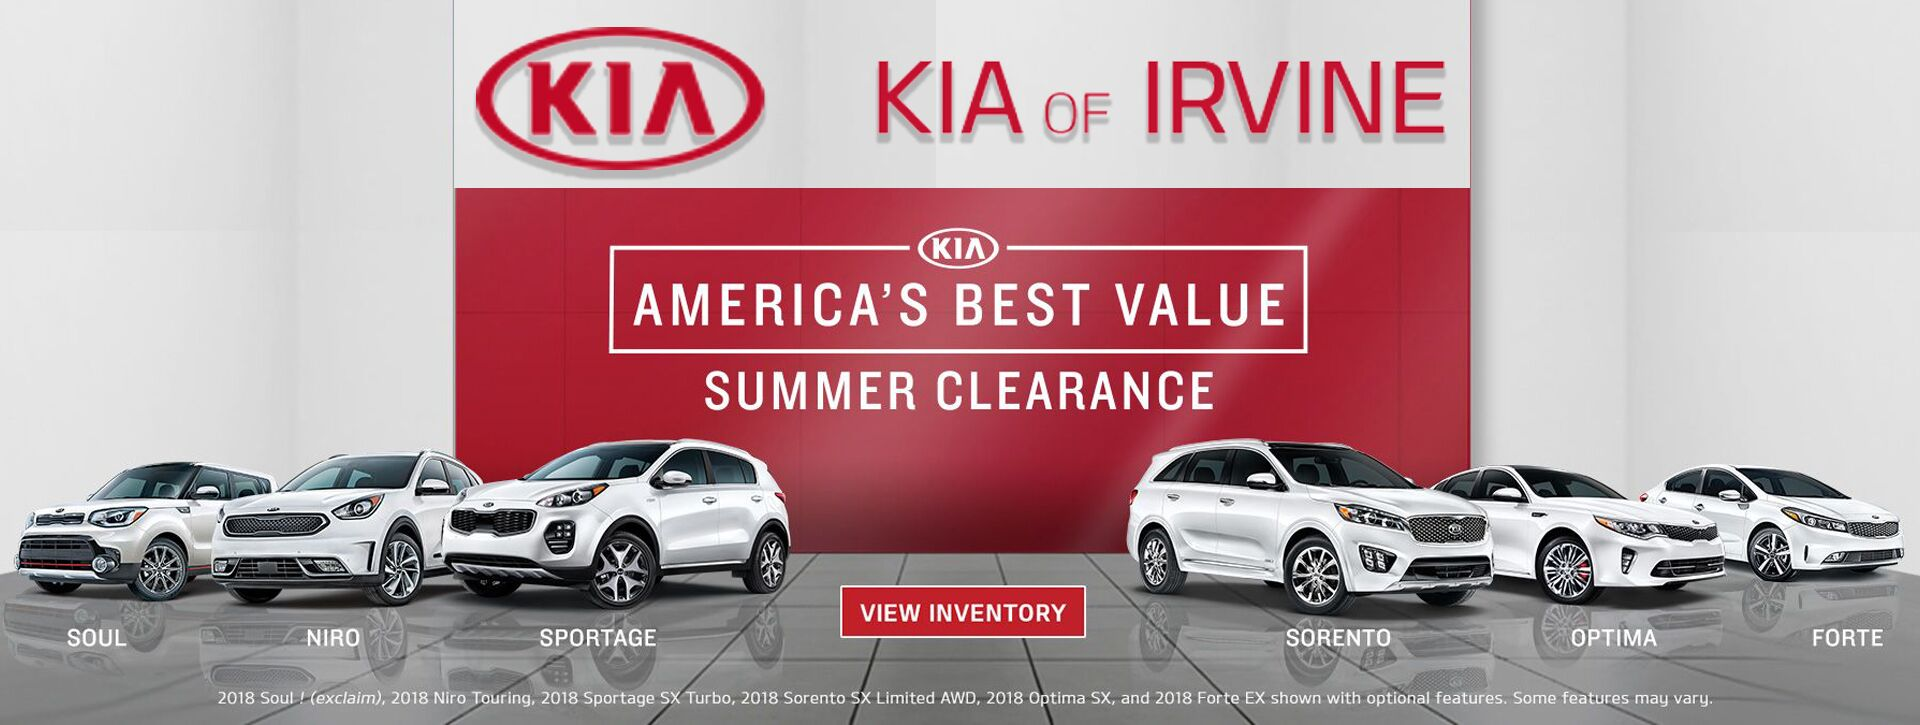 Car Pros Kia Huntington Beach Did Not Complete Service And